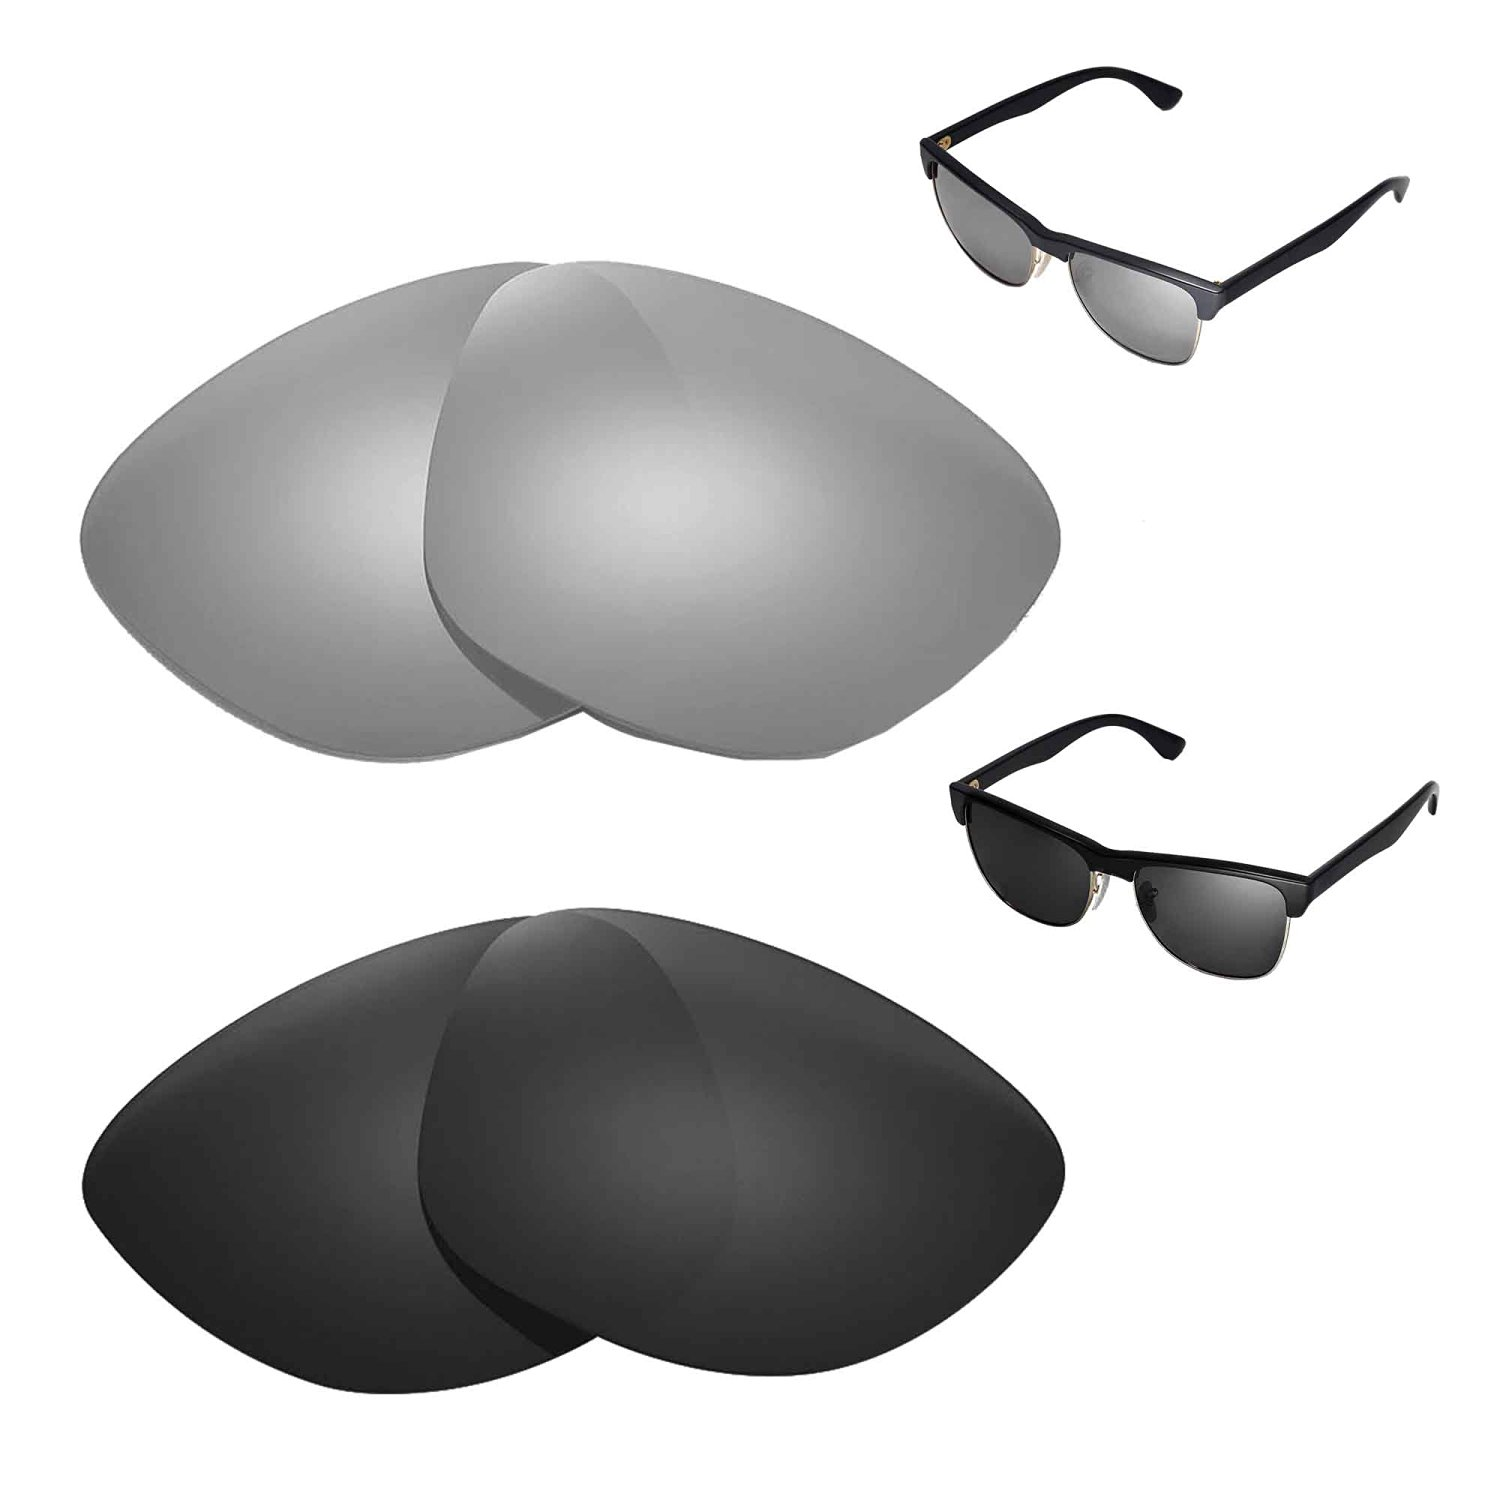 c418118611 Walleva Polarized Titanium + Black Replacement Lenses for Ray-Ban RB4175  57mm